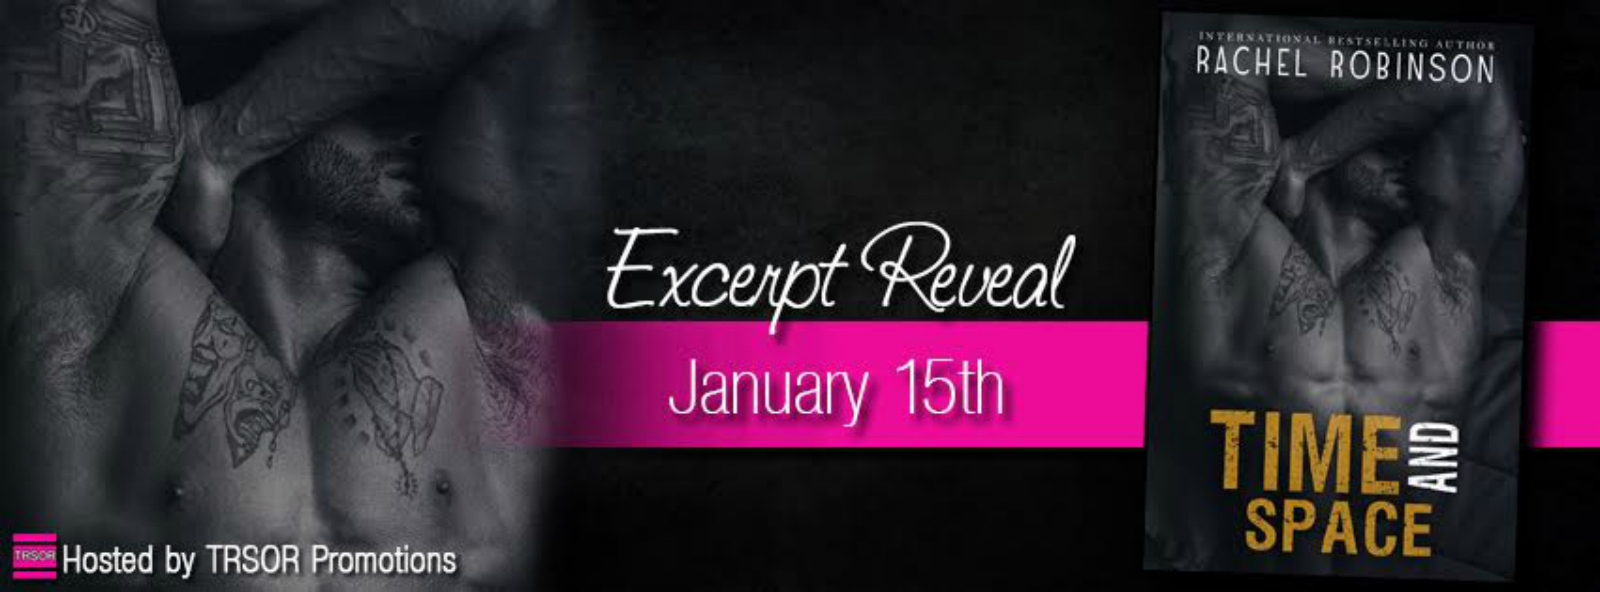 Excerpt reveal: Time and Space ~ Rachel Robinson